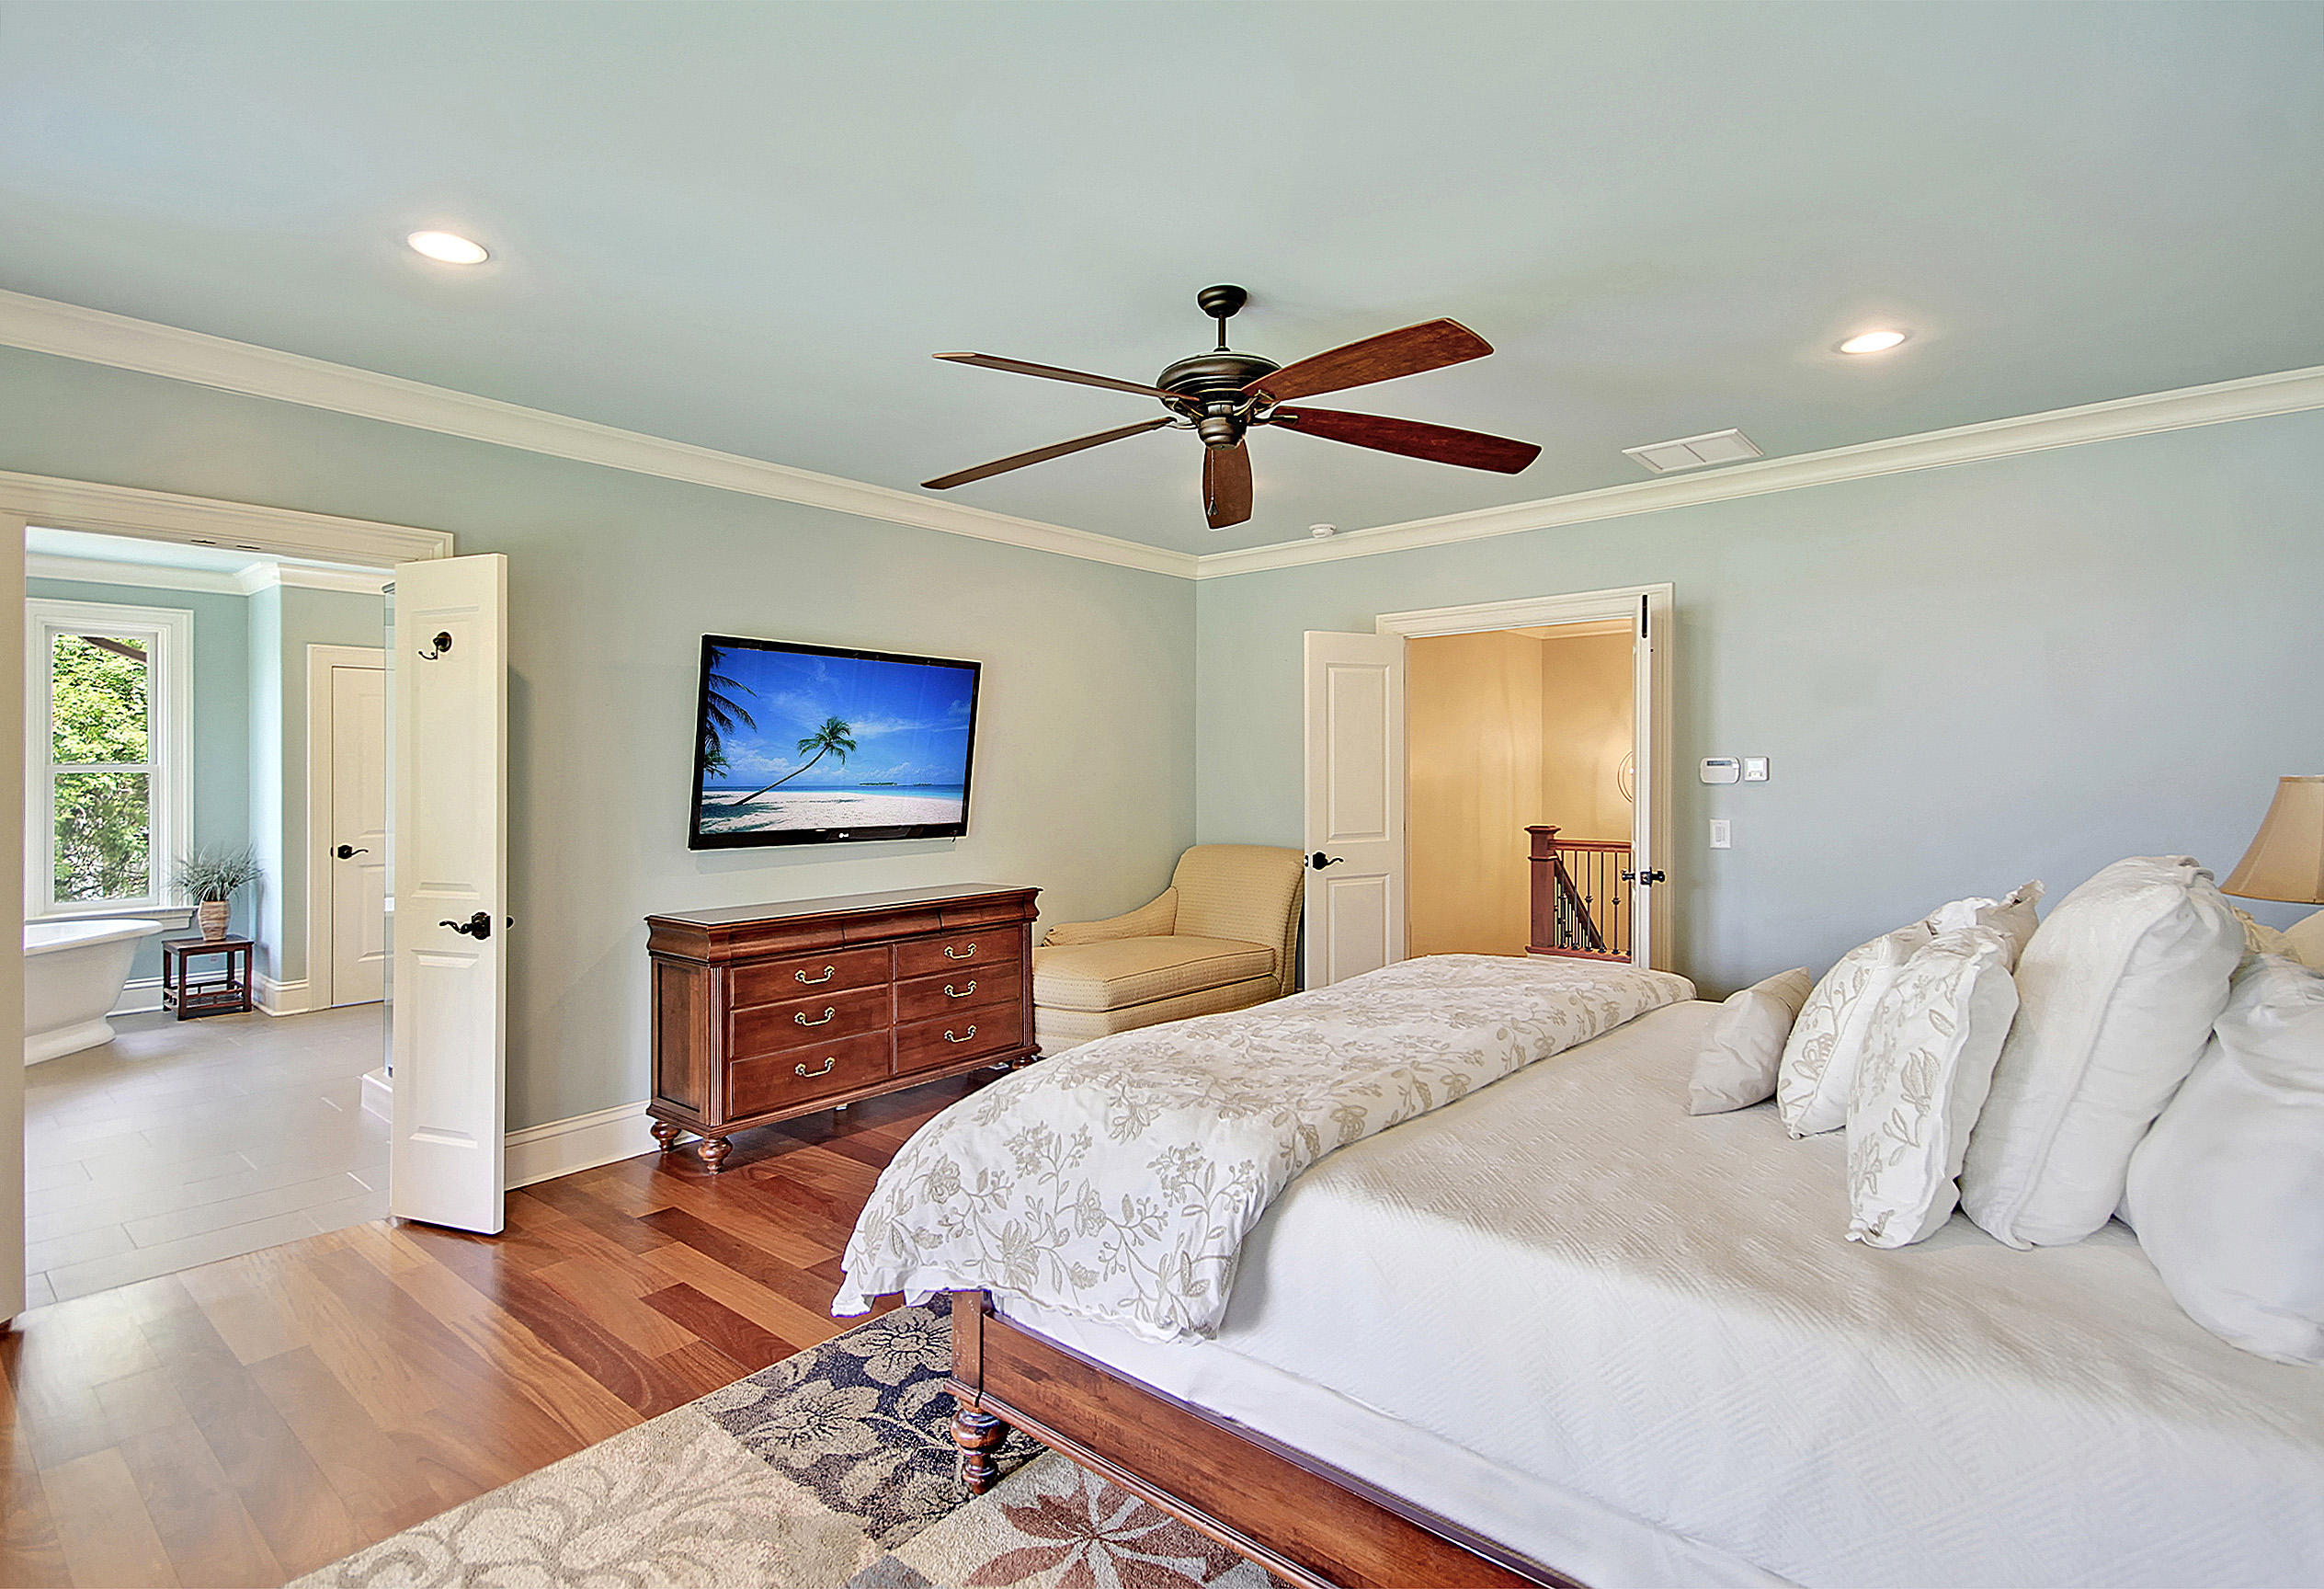 Riverland Terrace Homes For Sale - 2044 Wappoo Hall, Charleston, SC - 0